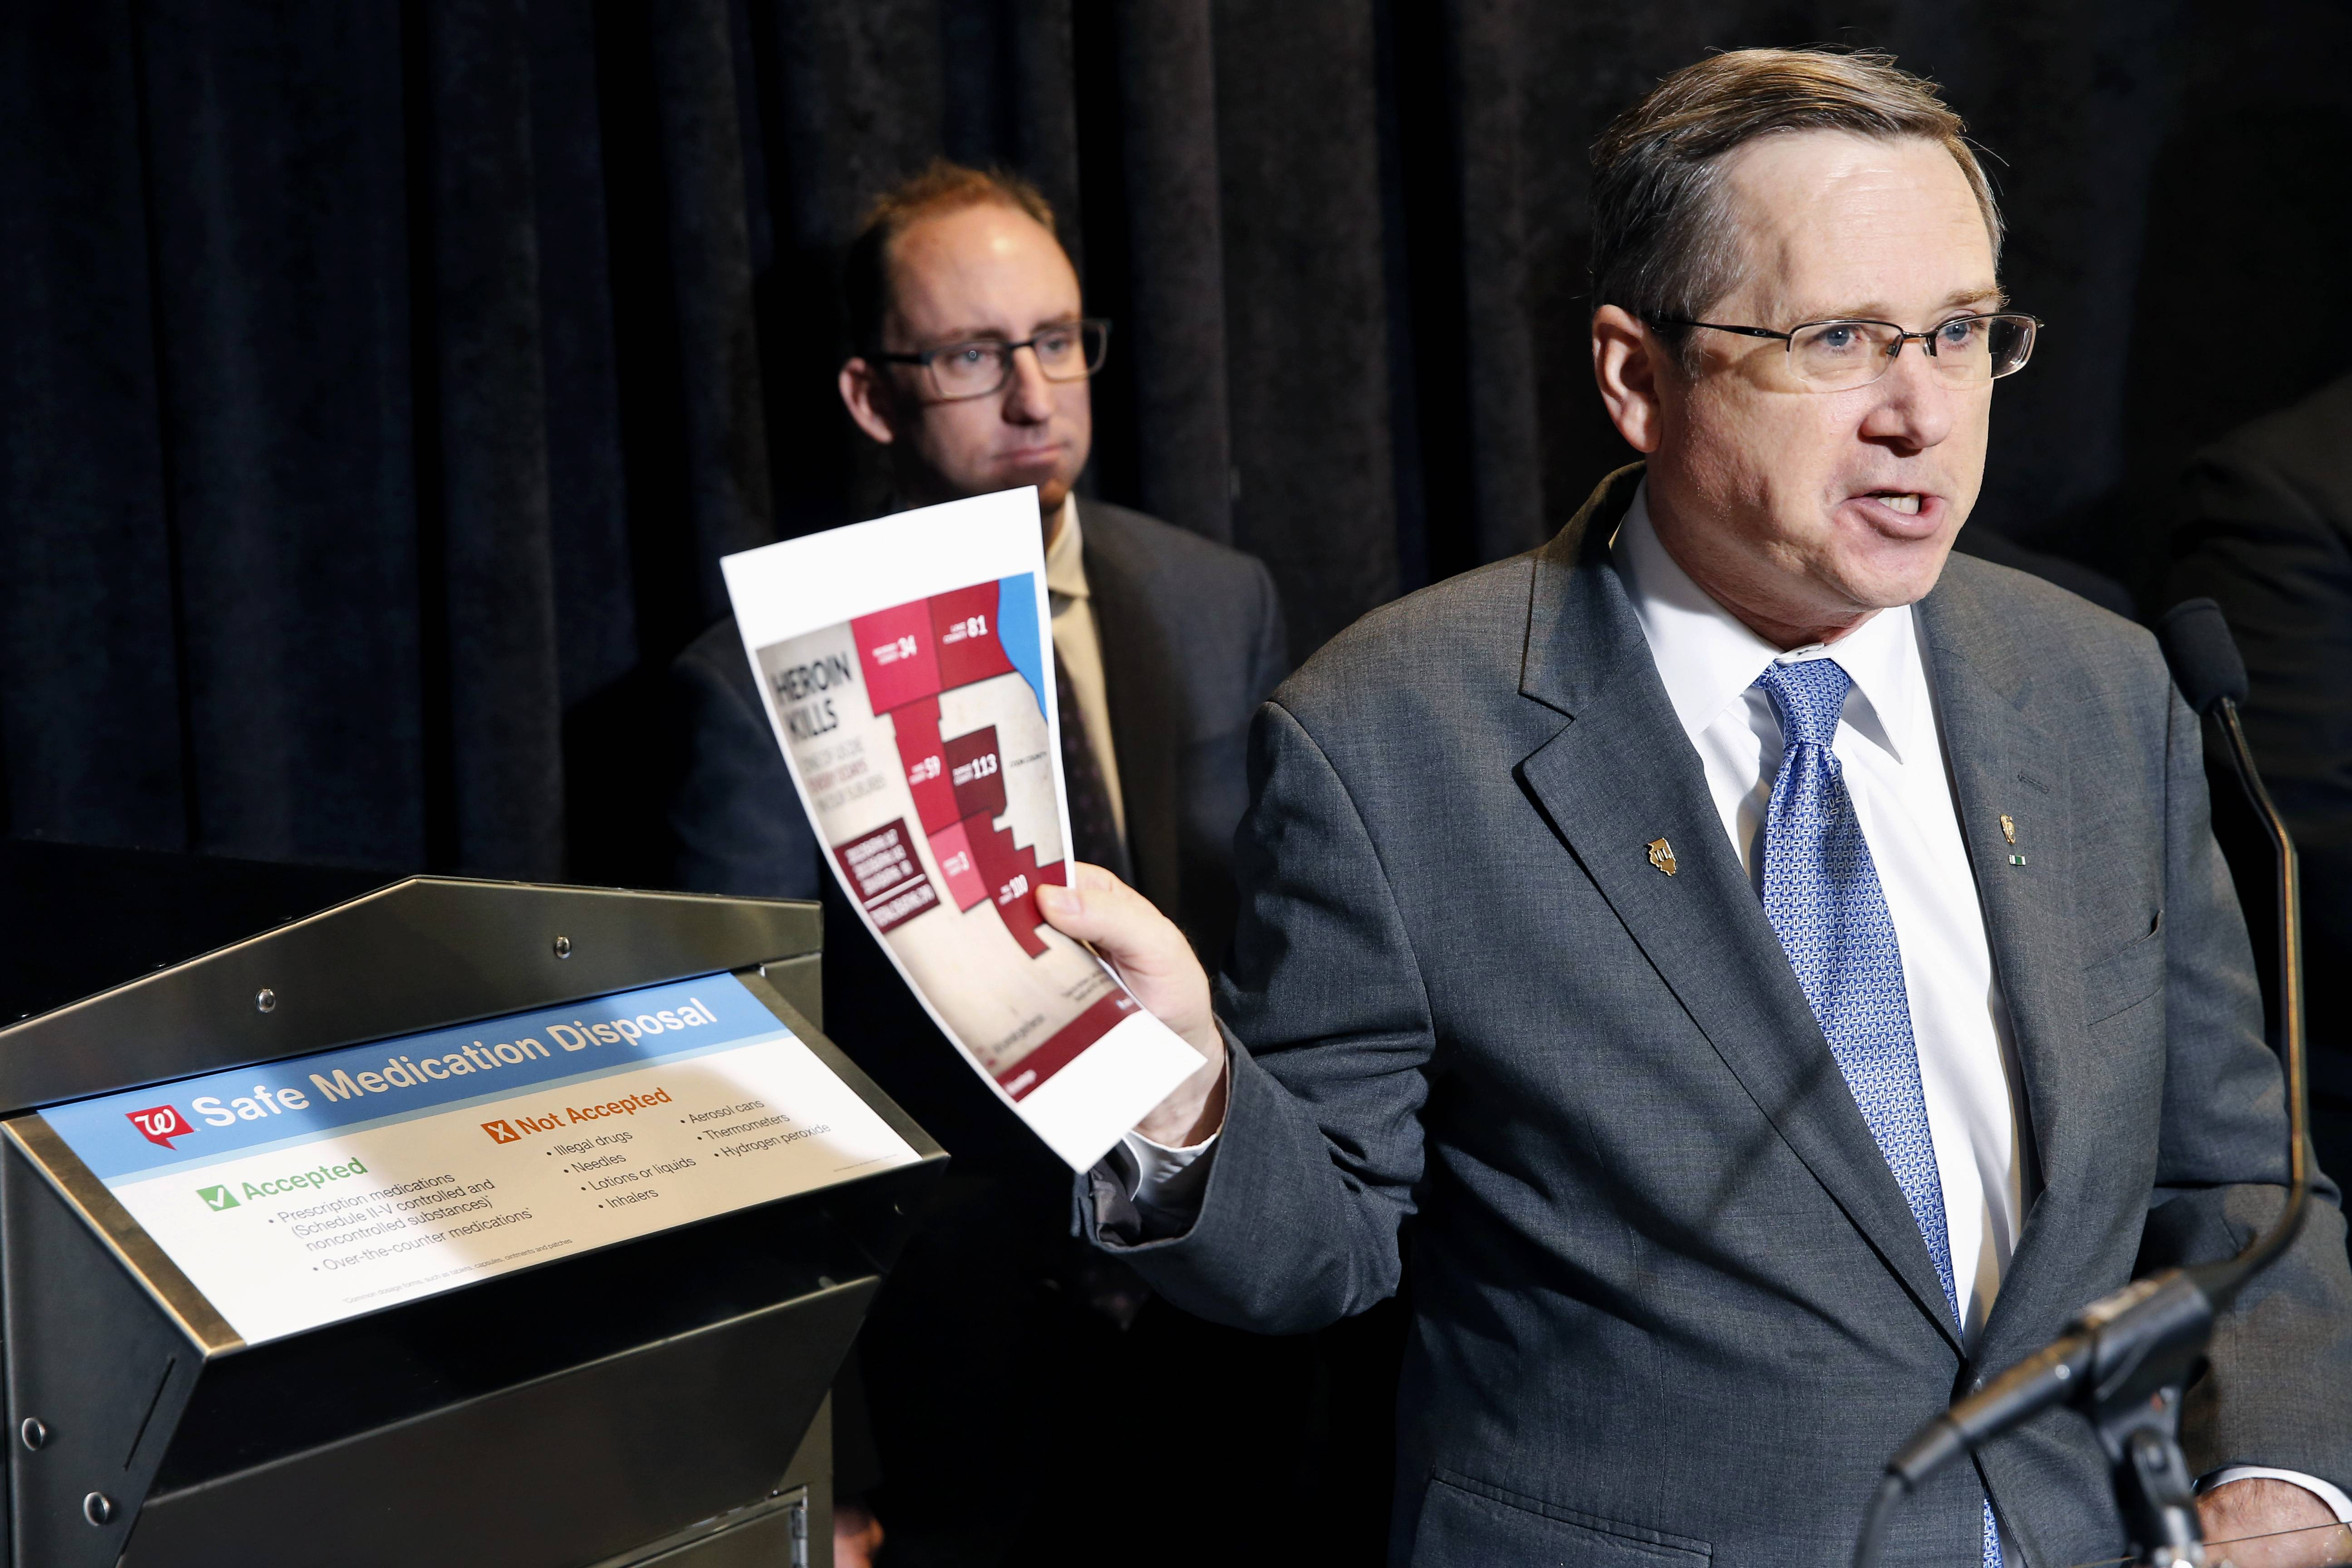 Sen. Mark Kirk, right, accompanied by Richard Ashworth, Walgreens president for pharmacy and retail operations, speaks Tuesday during a news conference in Washington, D.C., to discuss plans to make the heroin overdose antidote drug naloxone available without a prescription.